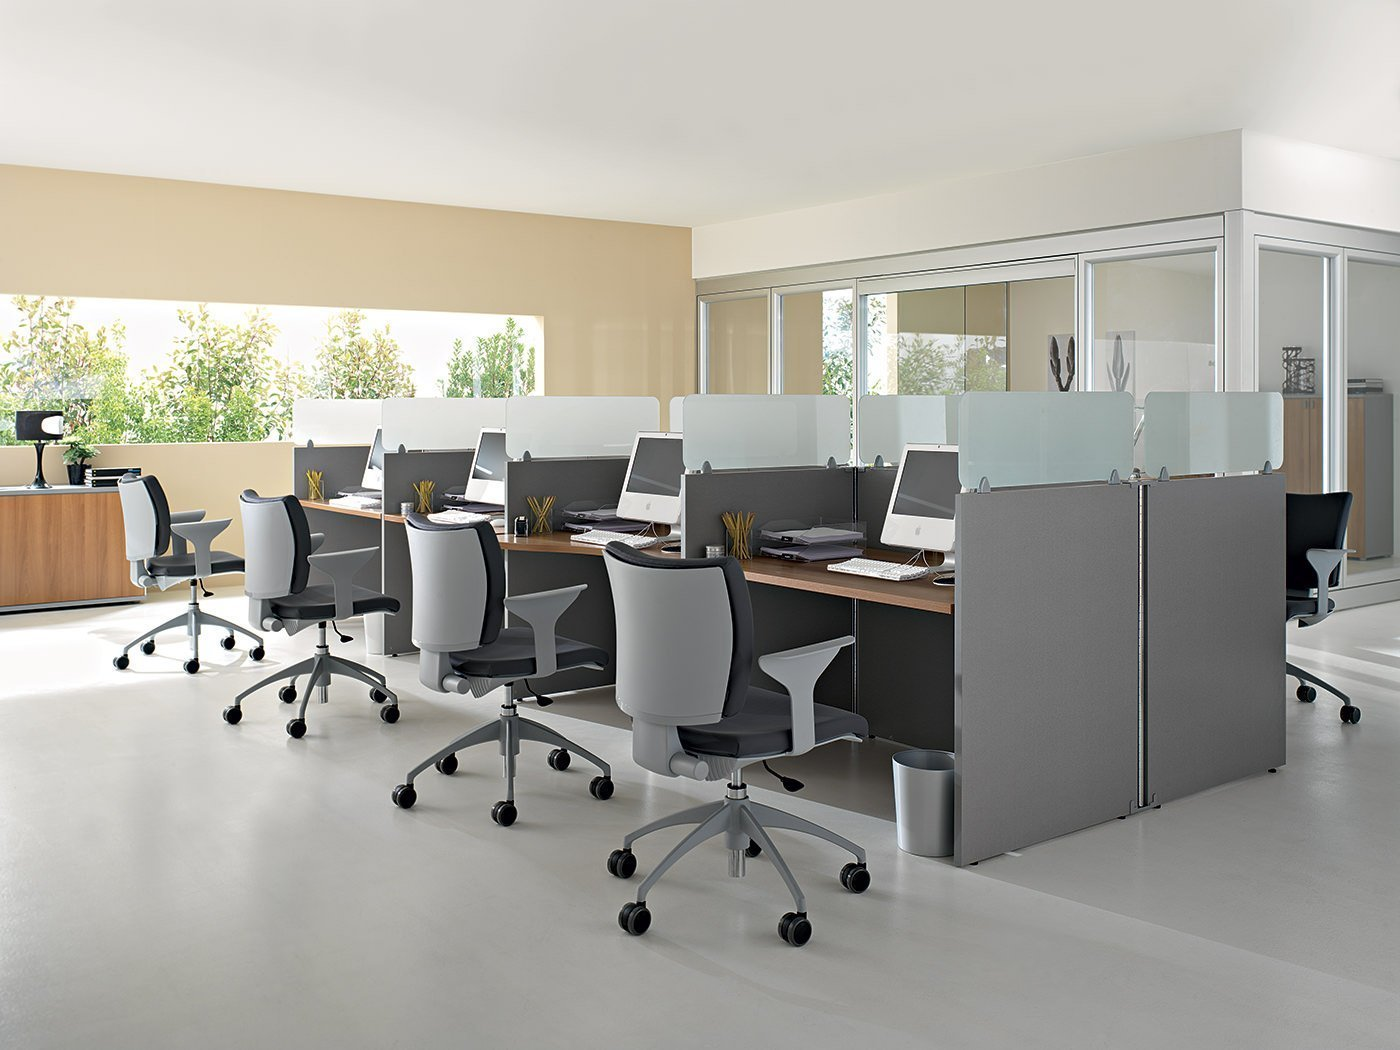 Technoplanet furniture operating office - Mobili per studio professionale ...